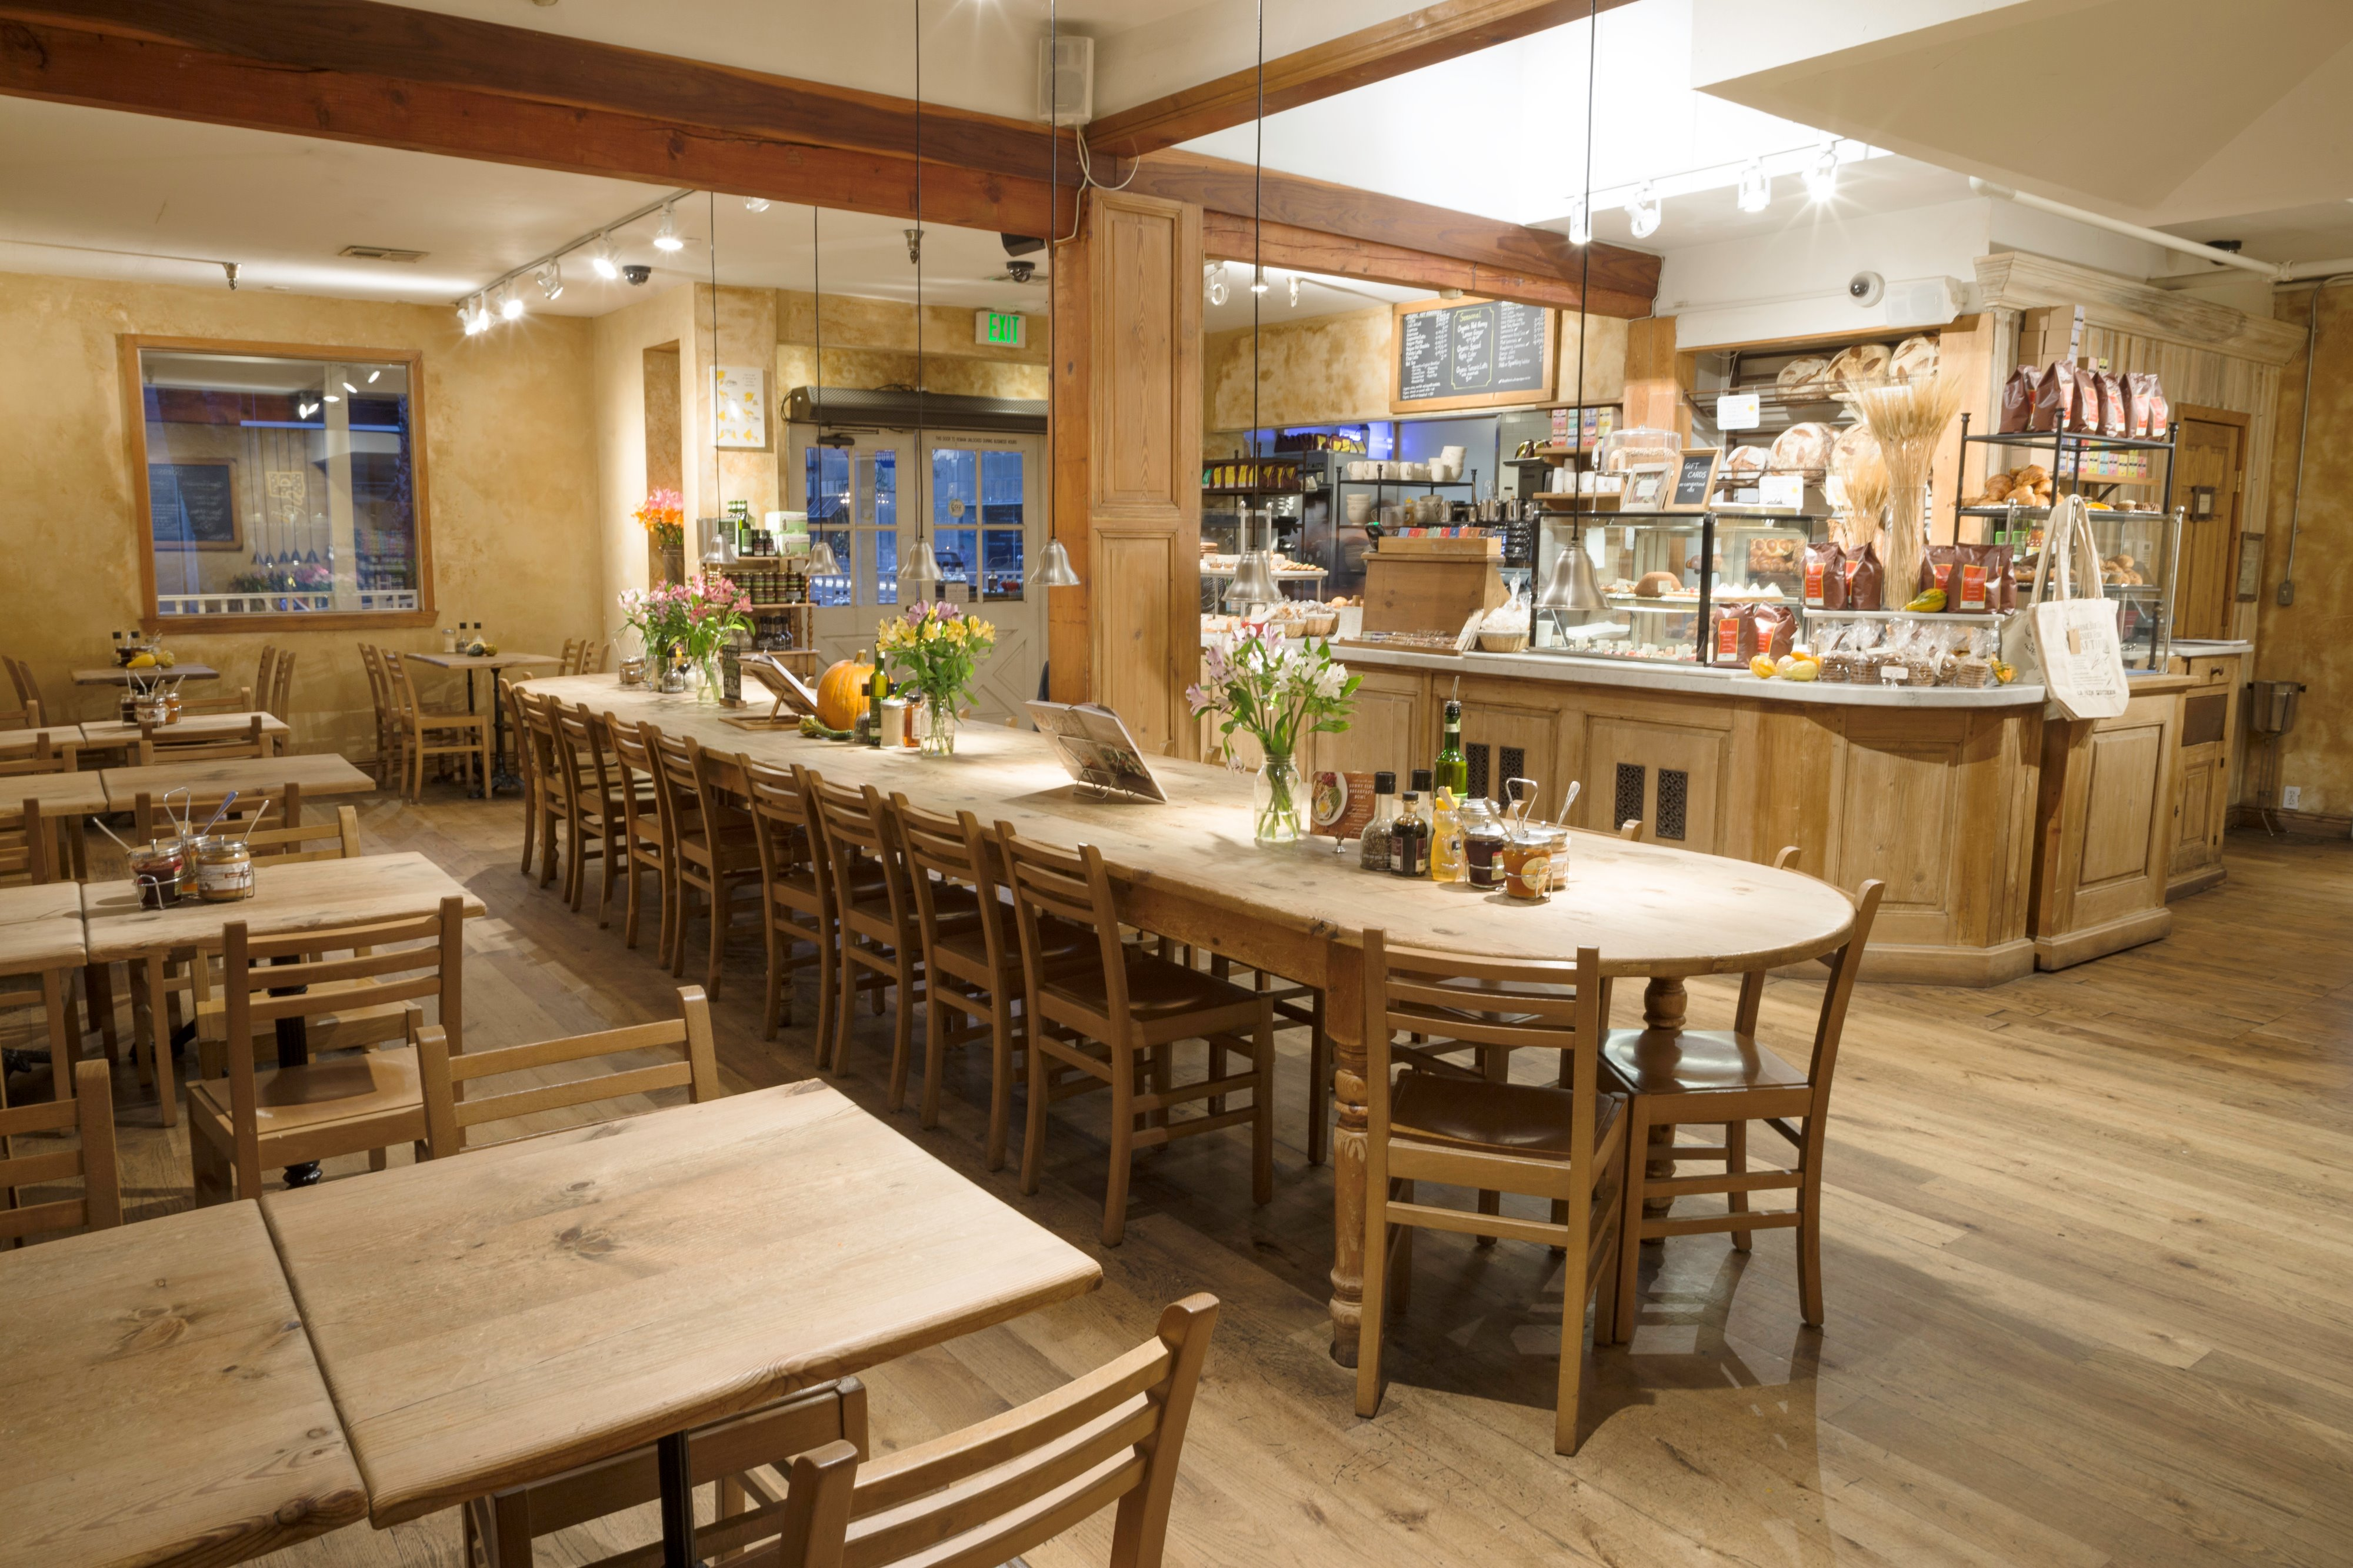 Rustic WEHO Restaurant with Wraparound Porch and Backyard Space